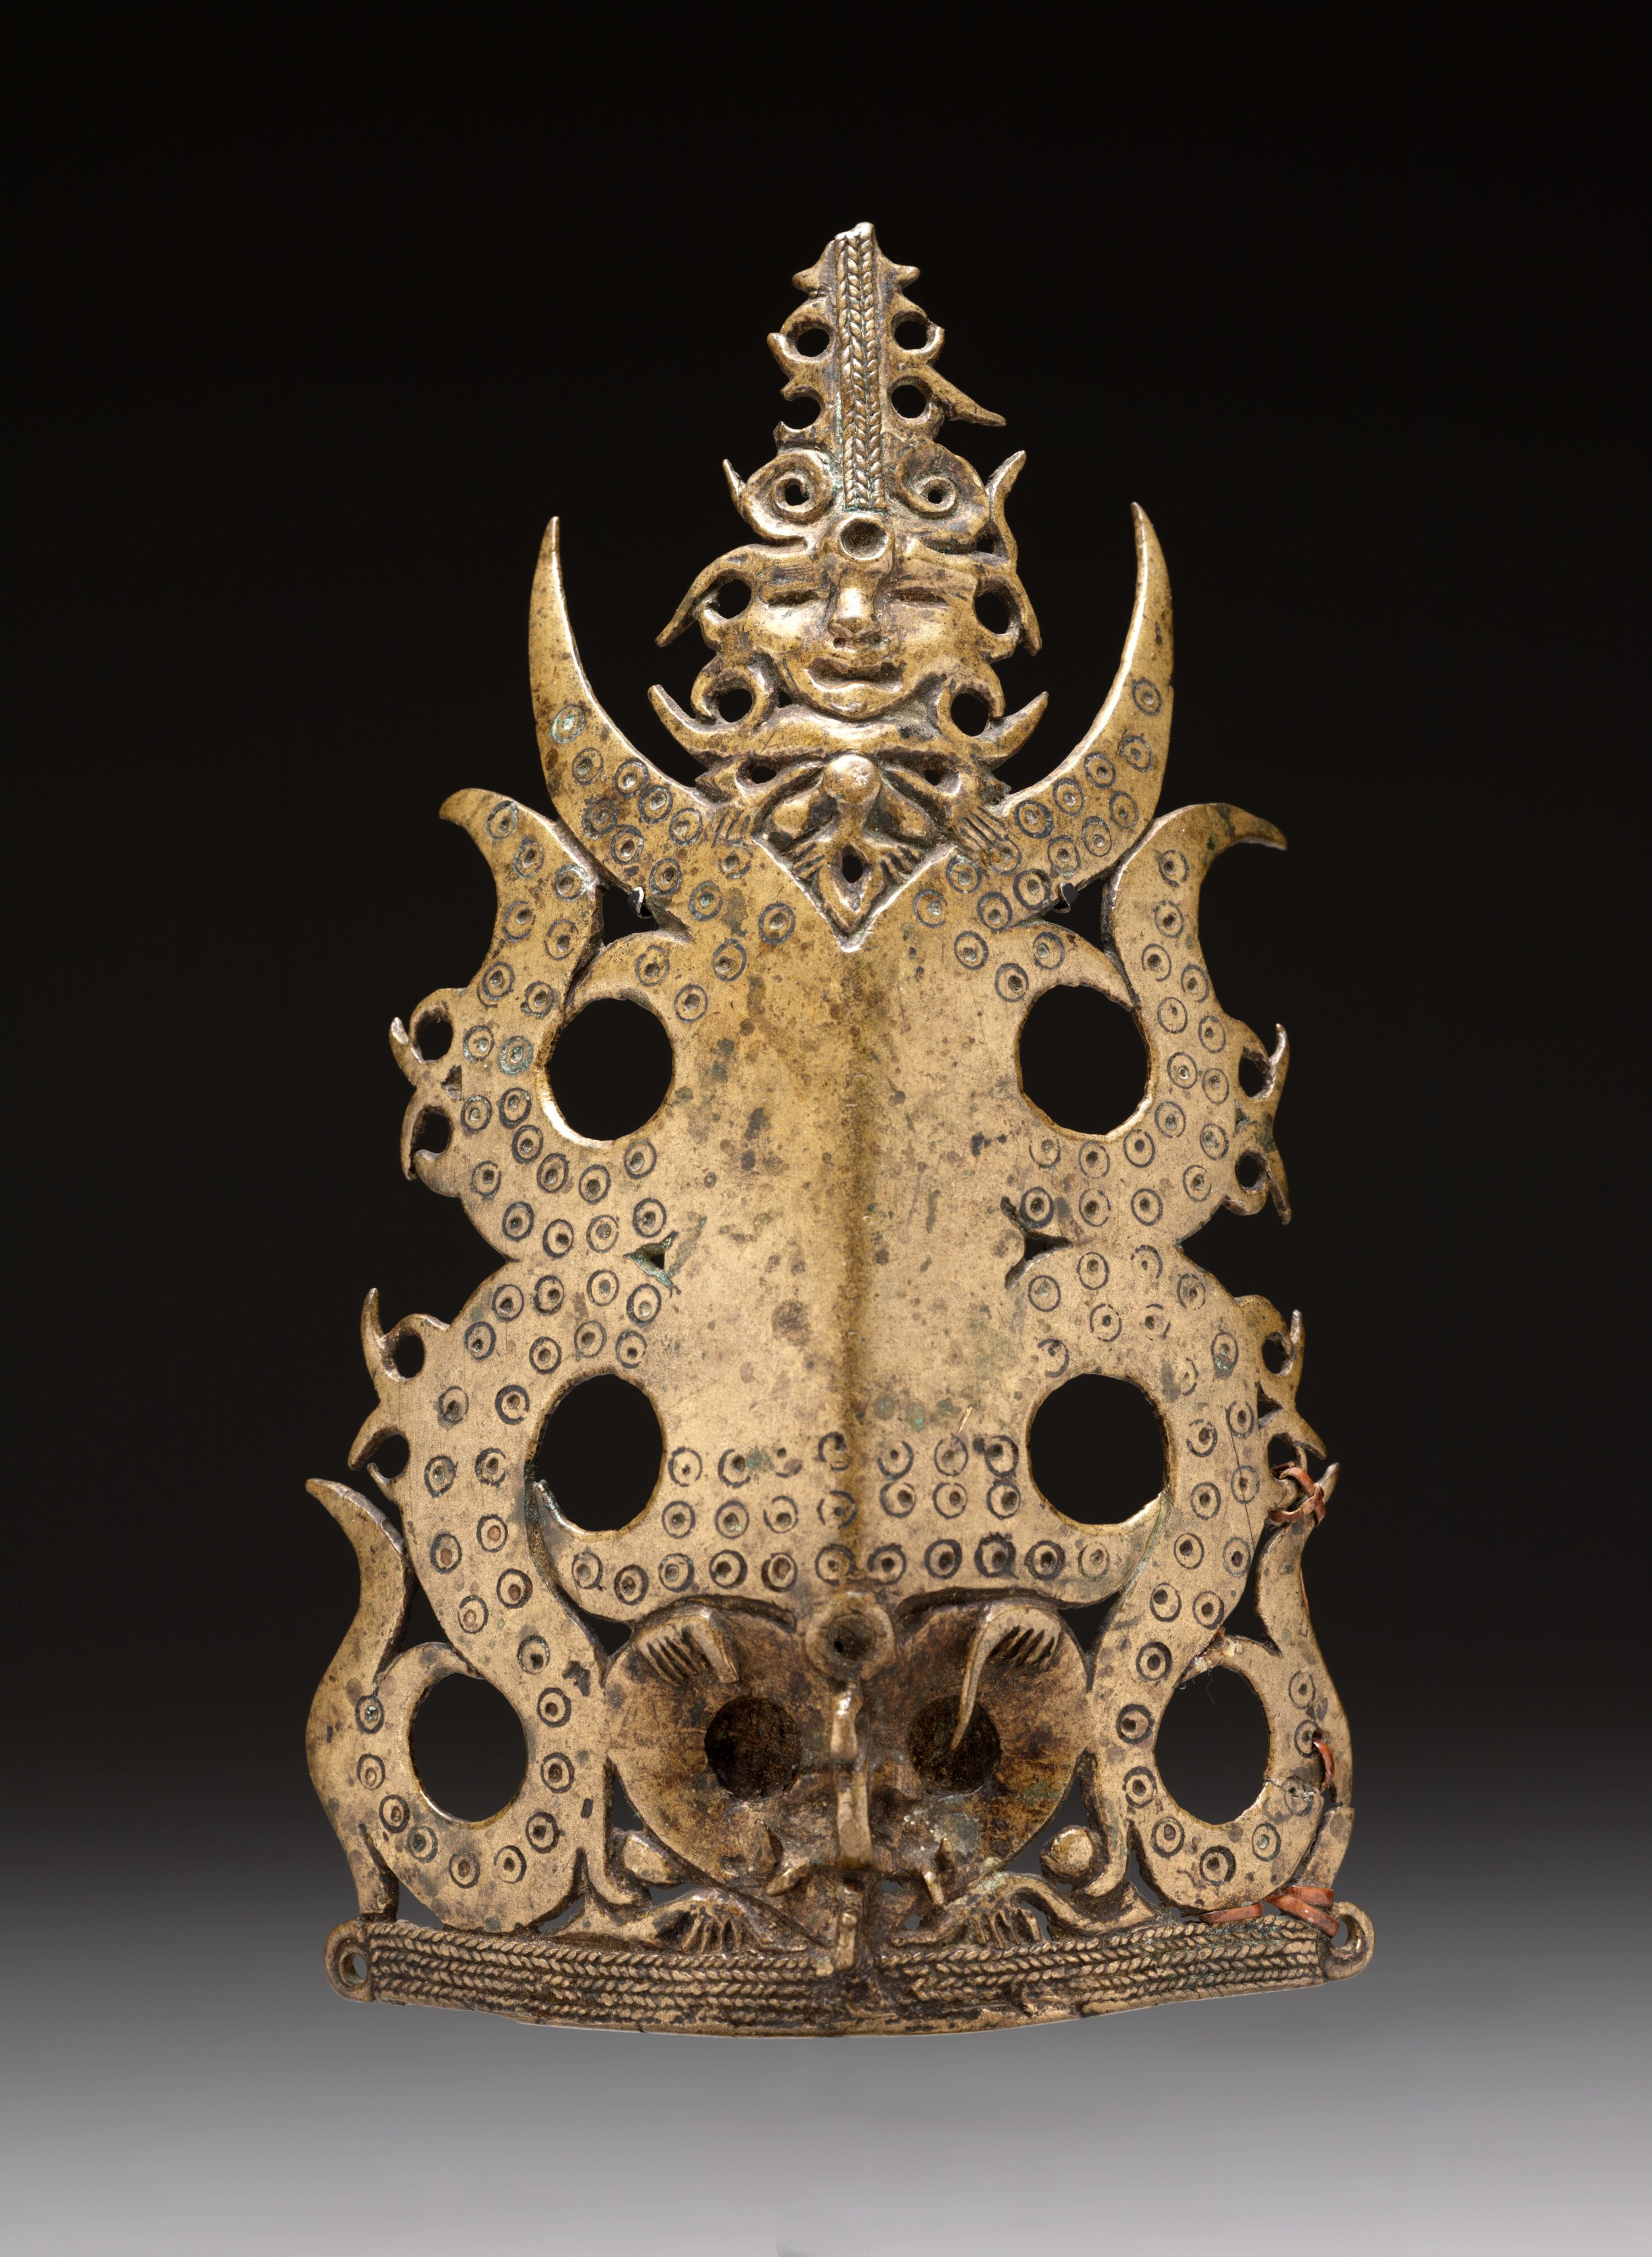 Warrior's Headdress Ornament, Frontal Figure    Tap Lavong Kayo  © The Dallas Museum of Art   Texas, USA